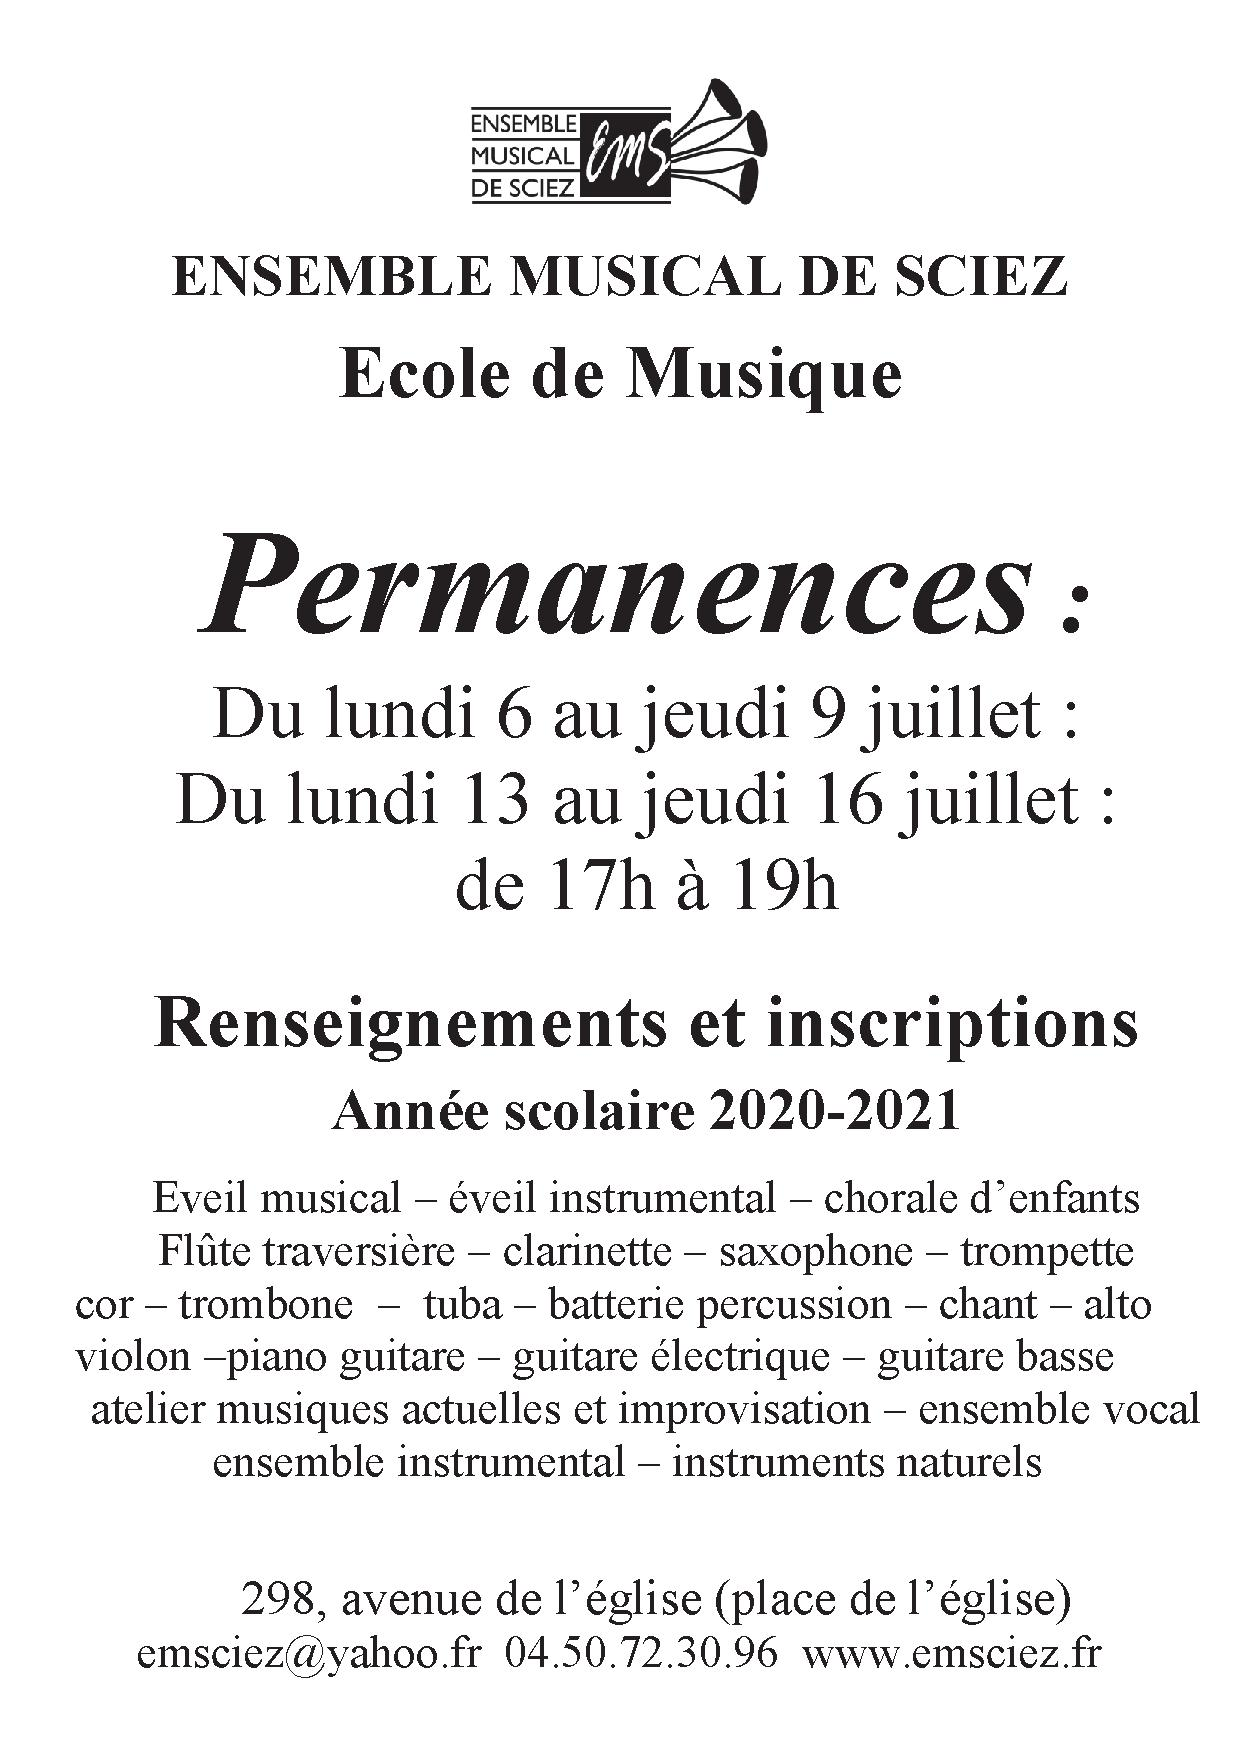 PERMANENCES D'INSCRIPTIONS